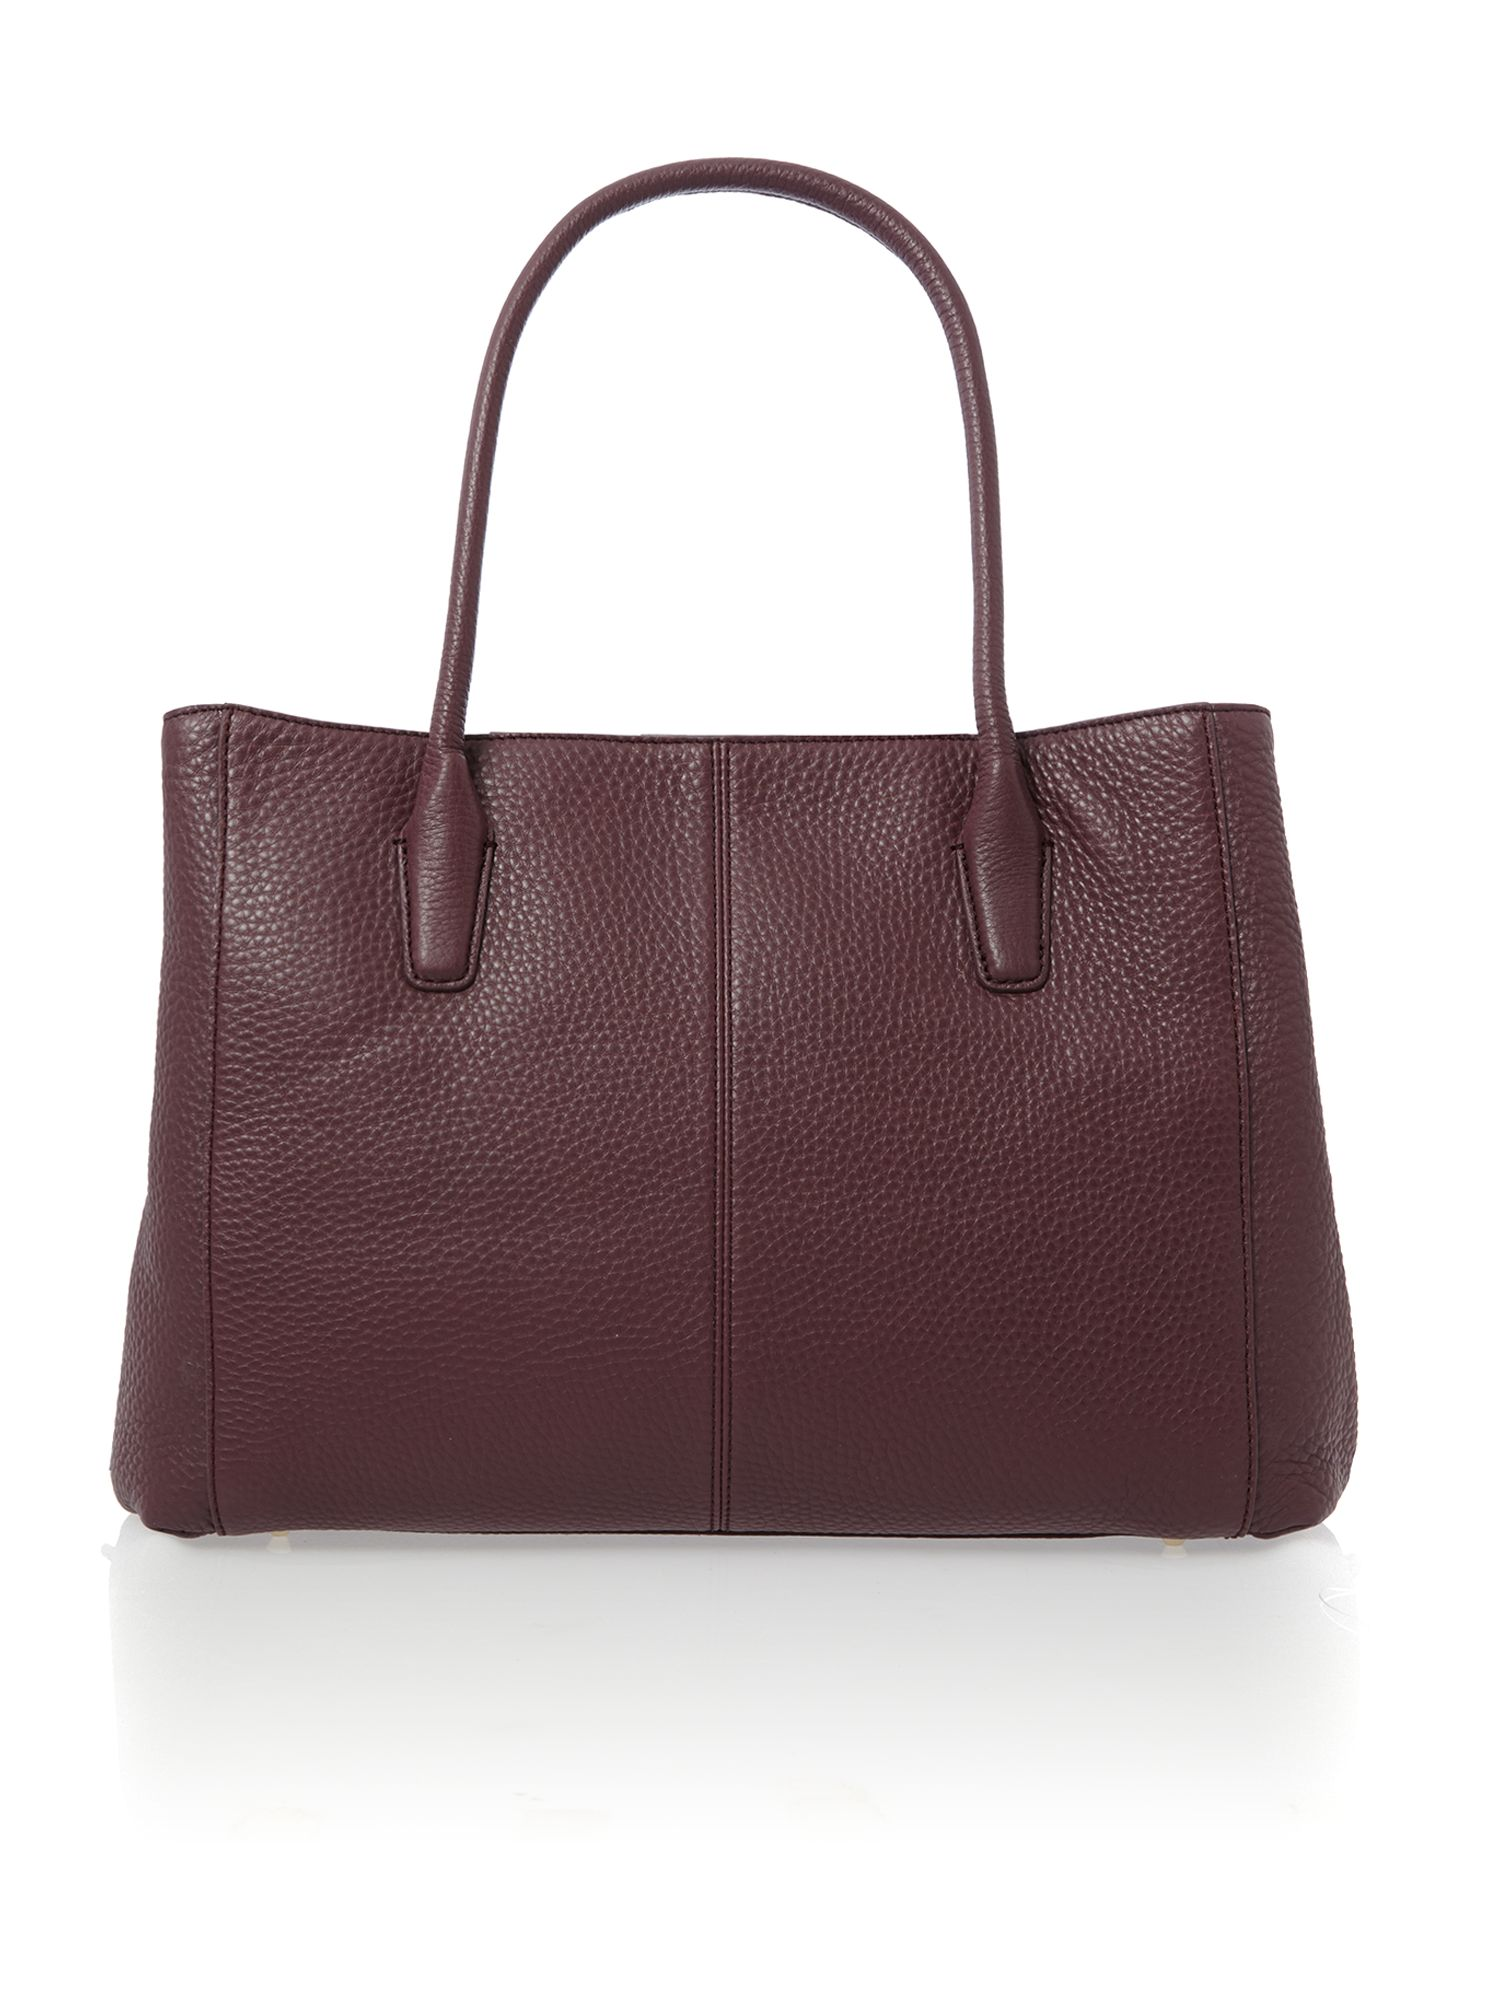 Tribeca purple triple compartment chain tote bag